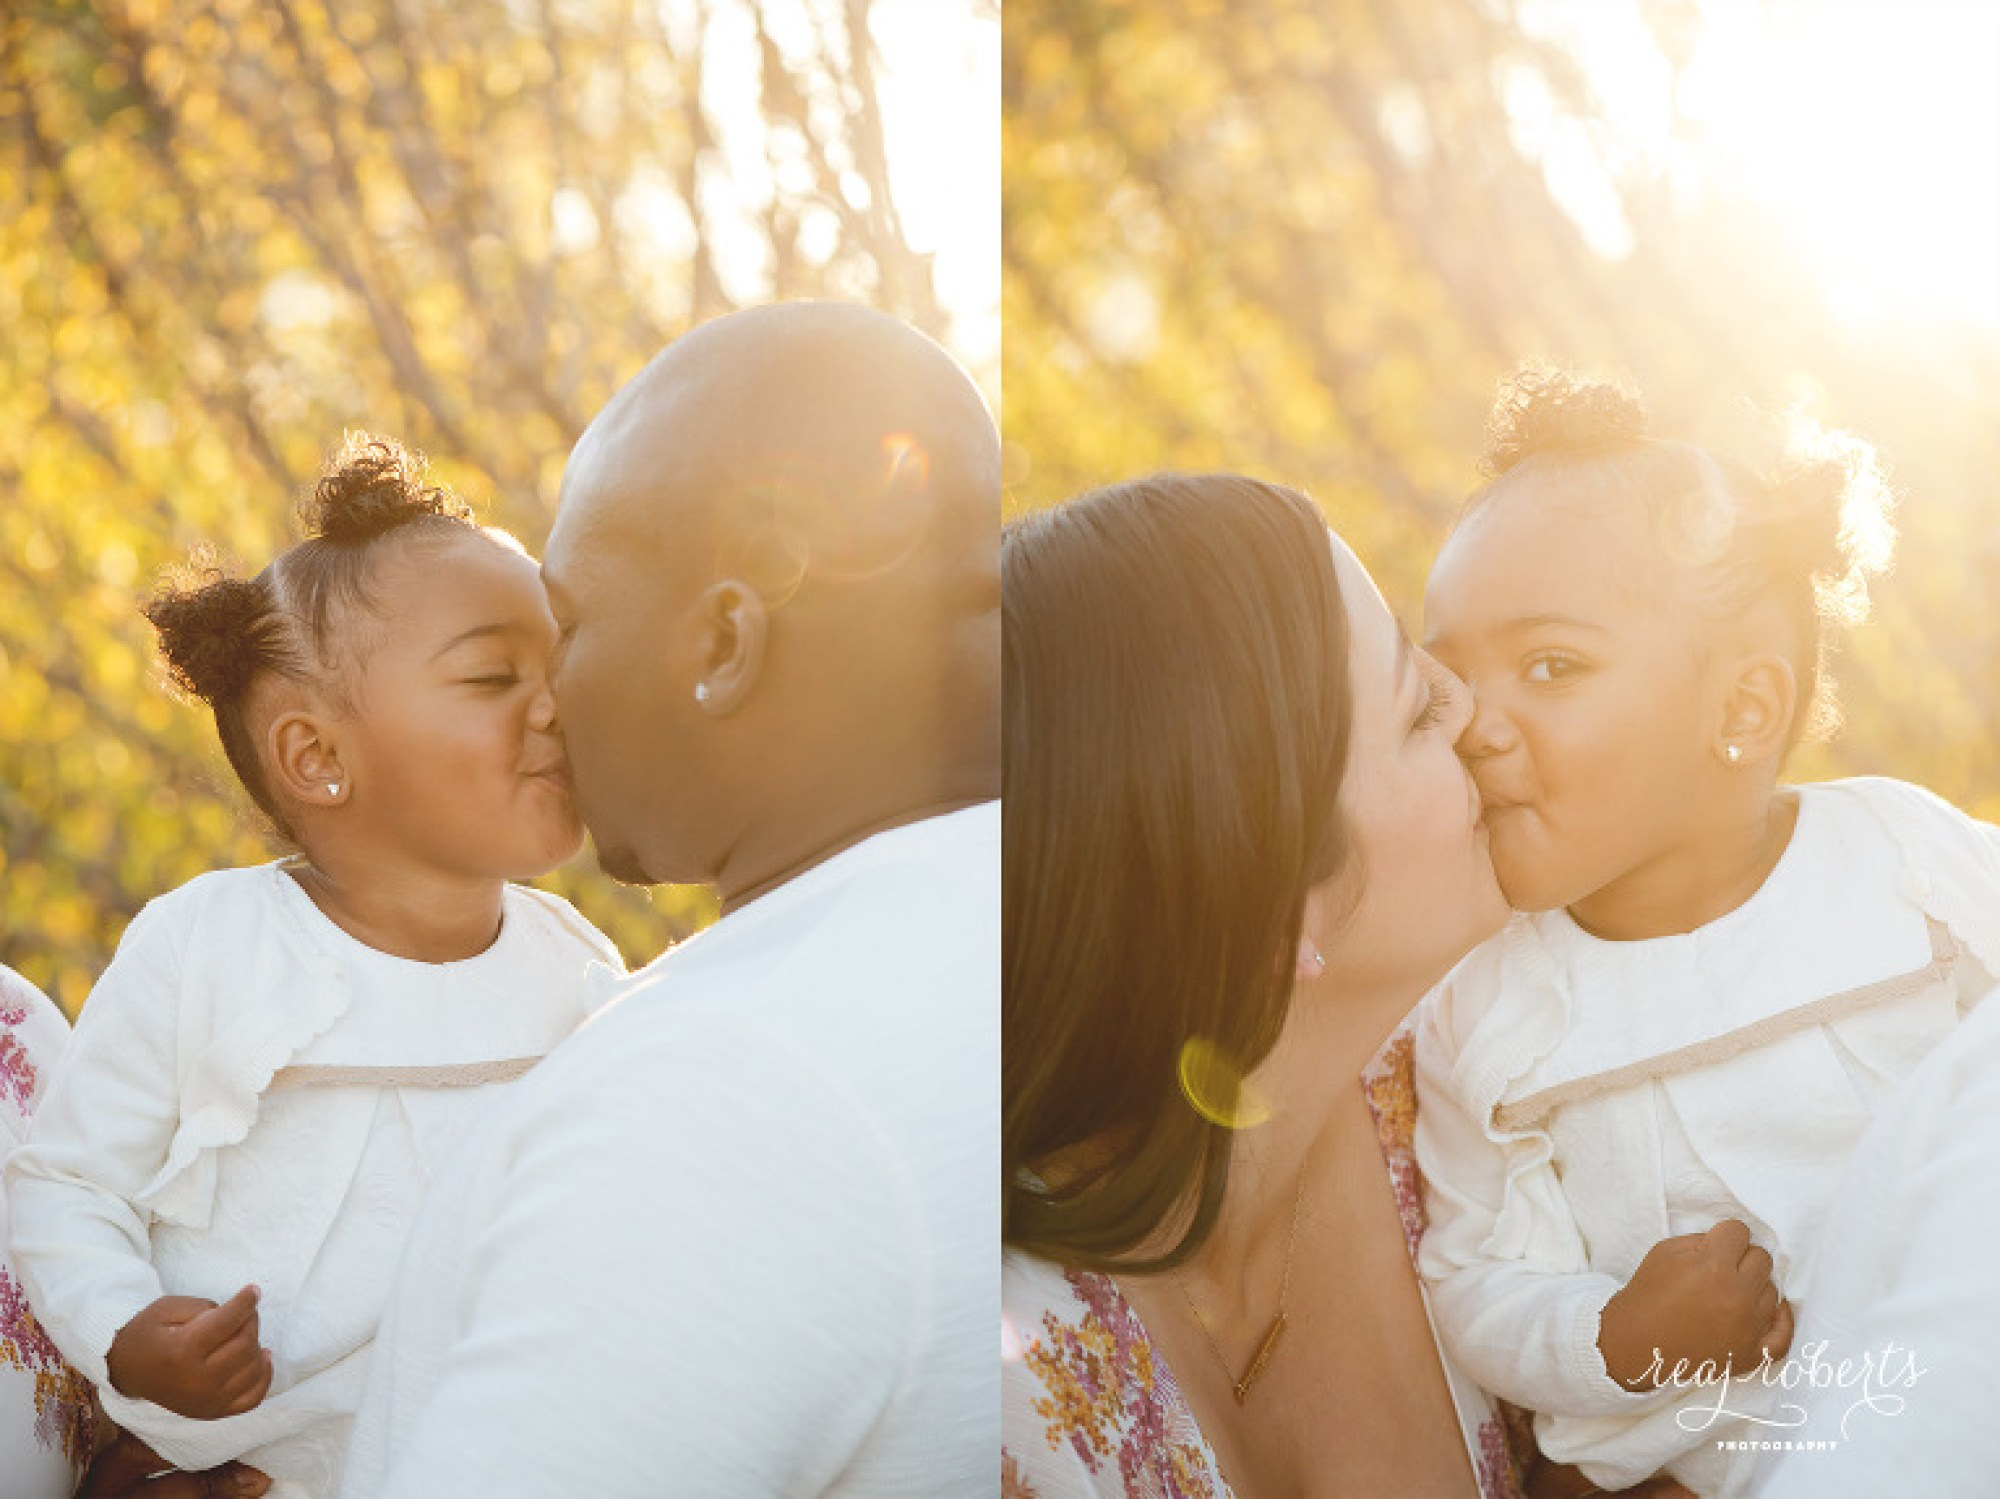 Chandler Lifestyle Family Photographer | Reaj Roberts Photography